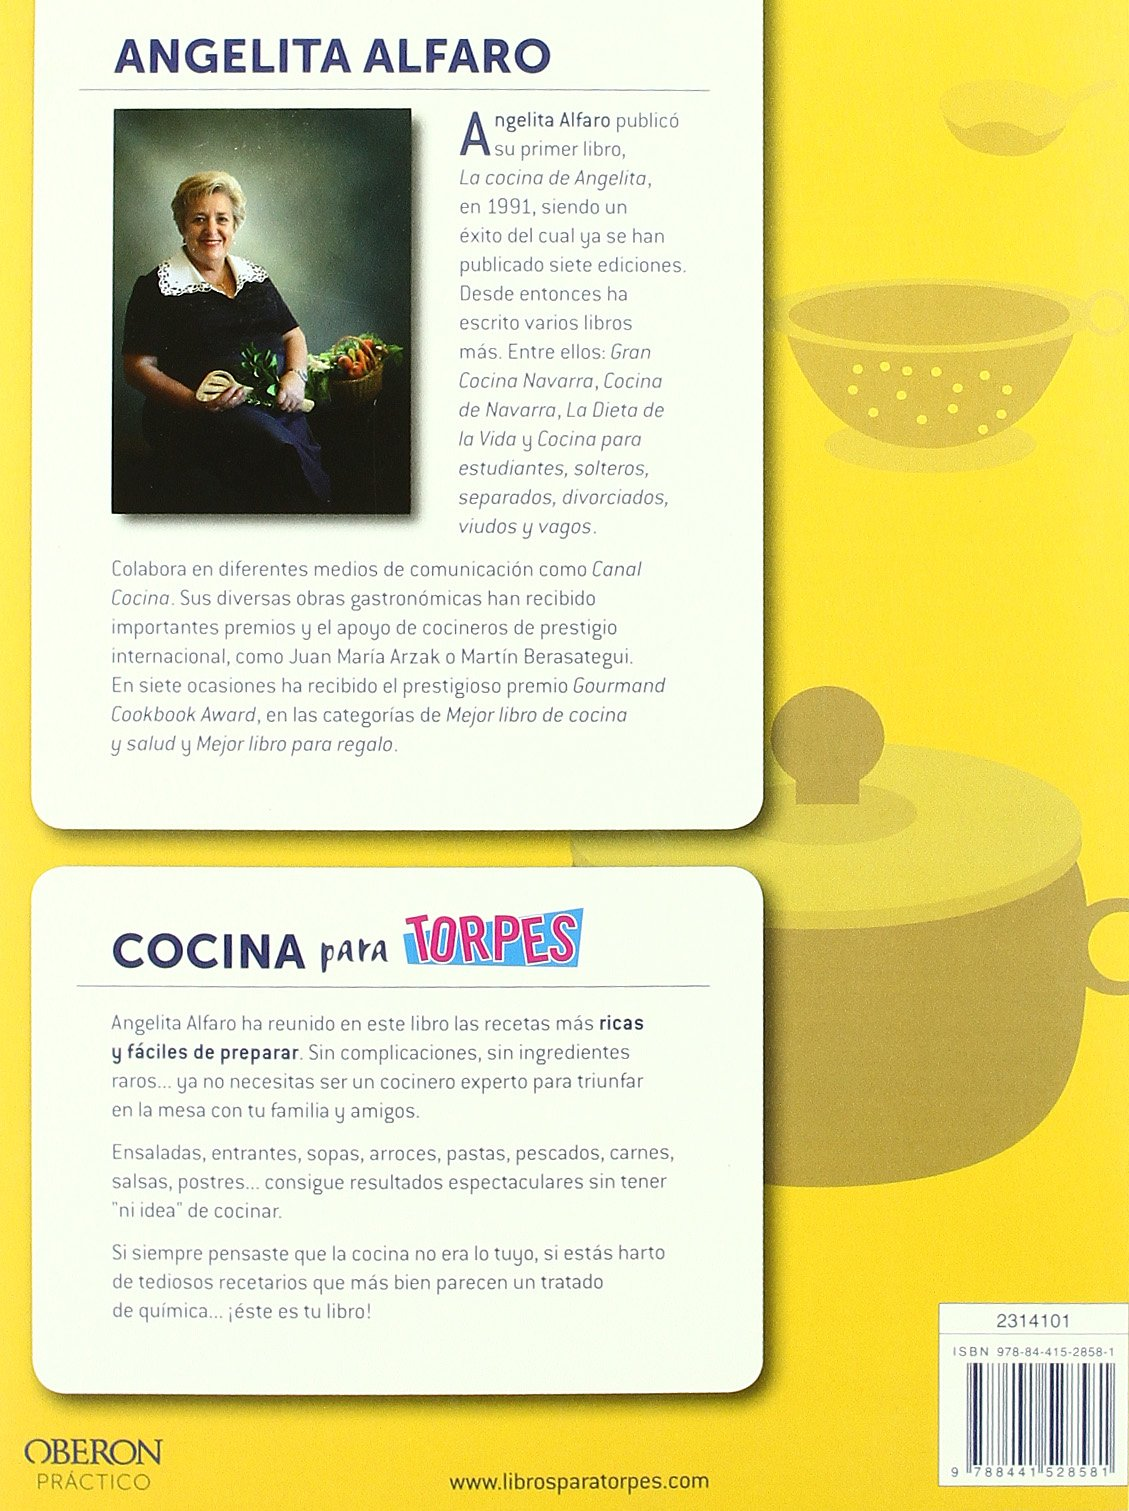 Cocina (Spanish Edition): Angelita Alfaro Vidorreta: 9788441528581: Amazon.com: Books